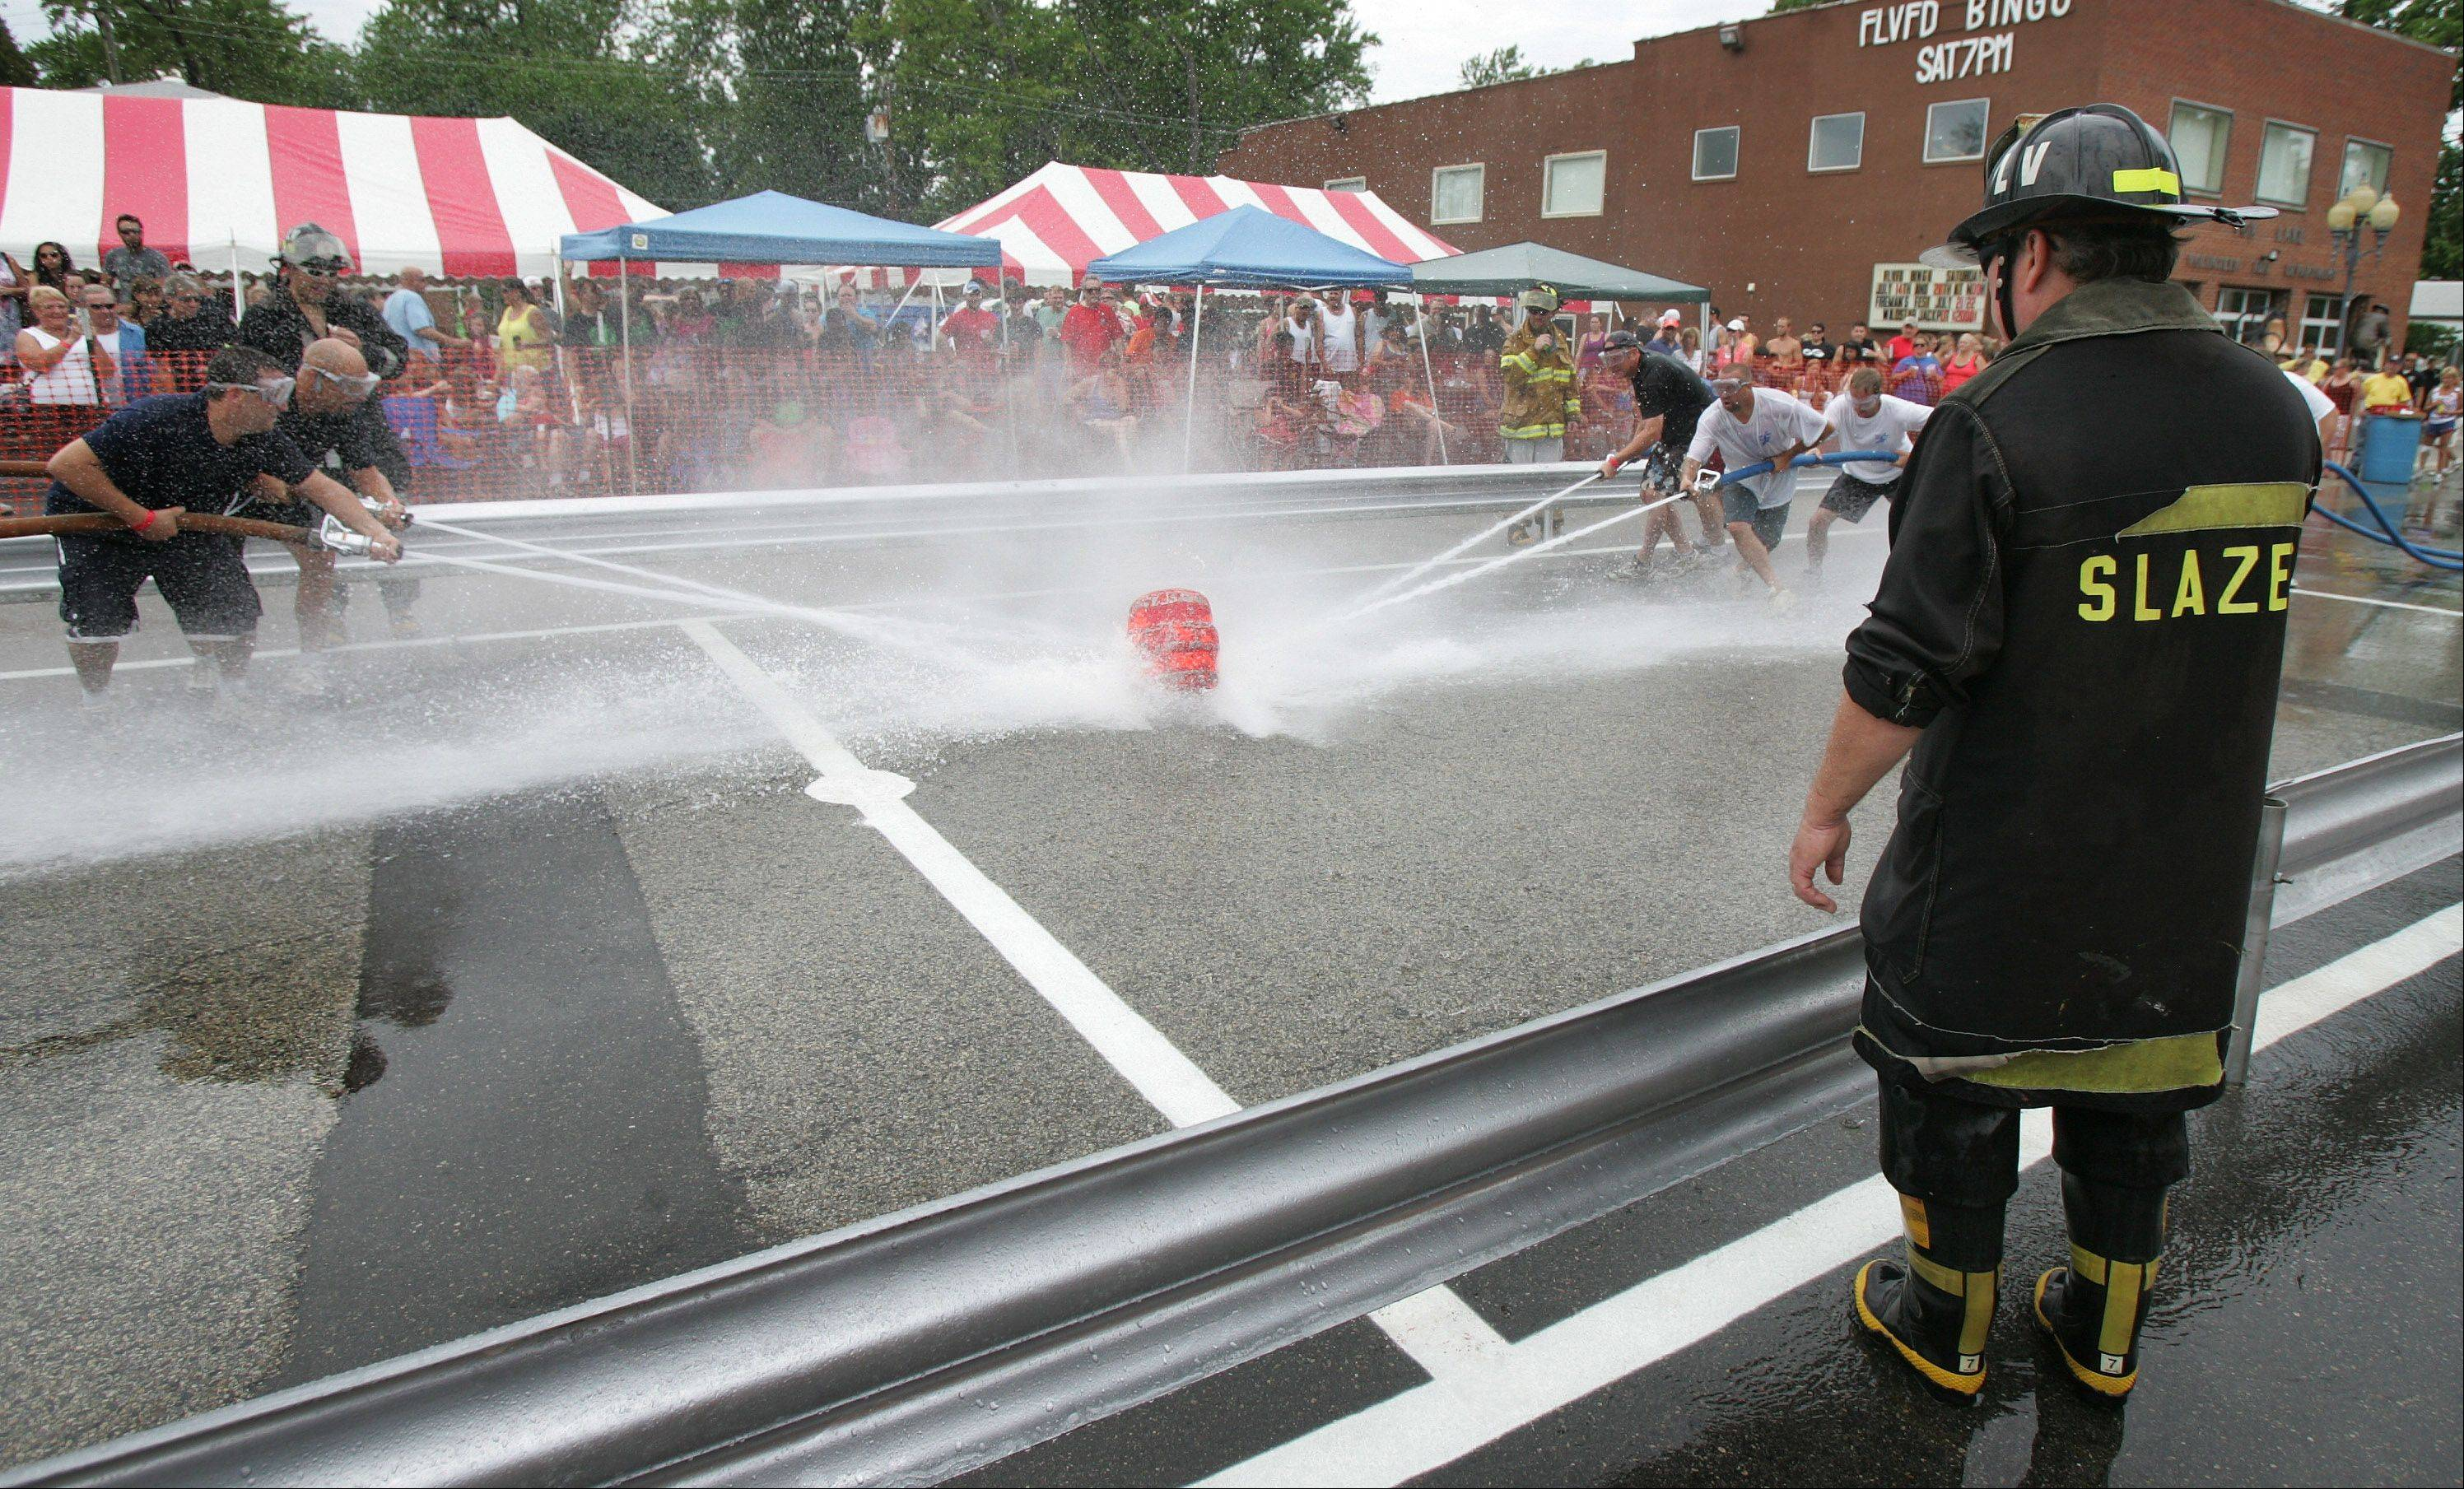 Lake Villa Fire Chief Frank Slazes, right, judges the battle between Team Chain Crawl and Team Merlins during the water fights at the Fox Lake Fireman�s Festival Sunday near the Fox Lake bingo hall.